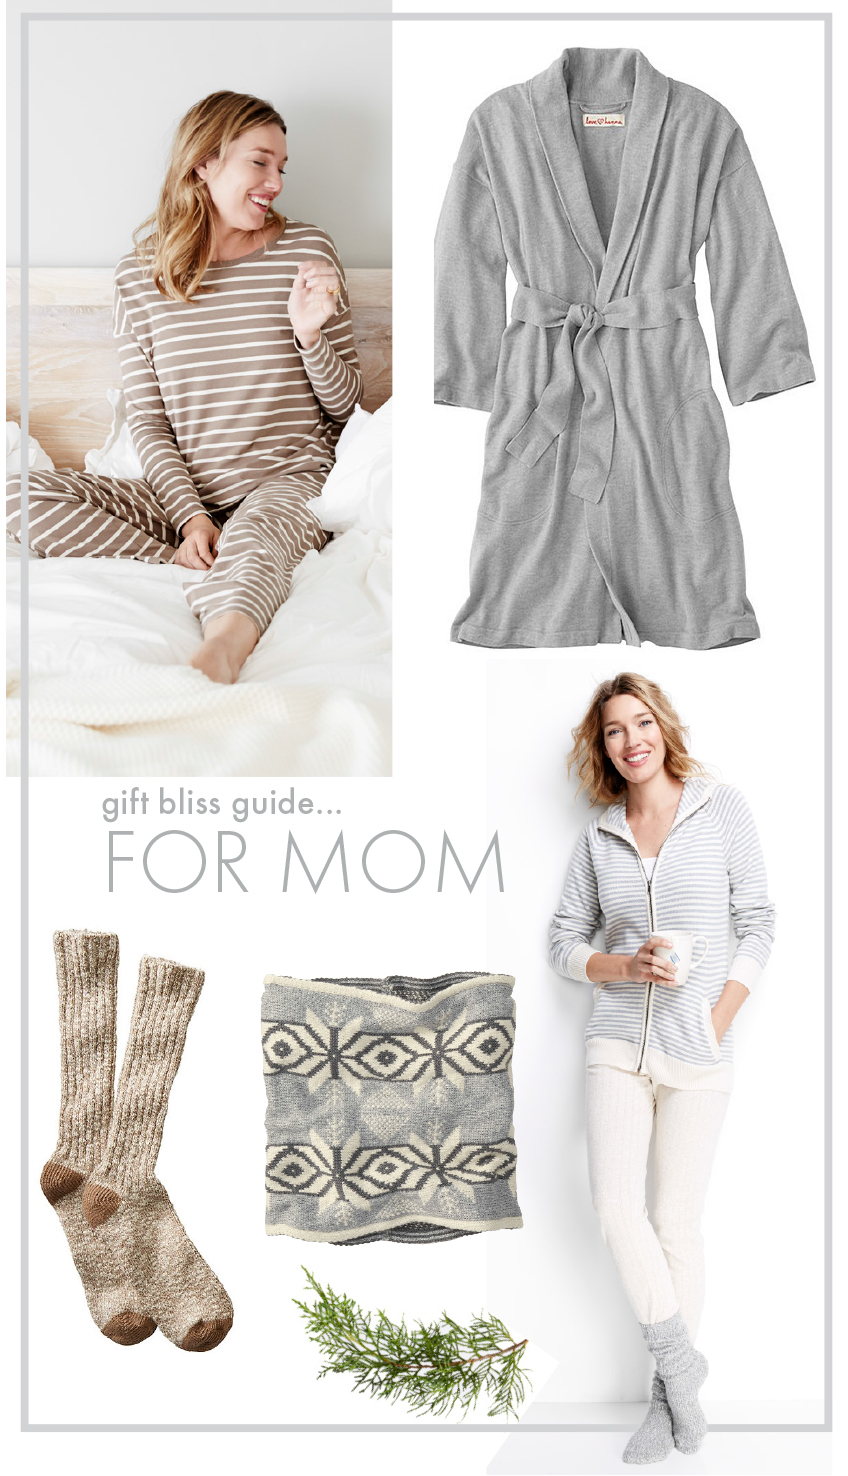 Mom Cozy Relax Gift Guide - Hanna andersson